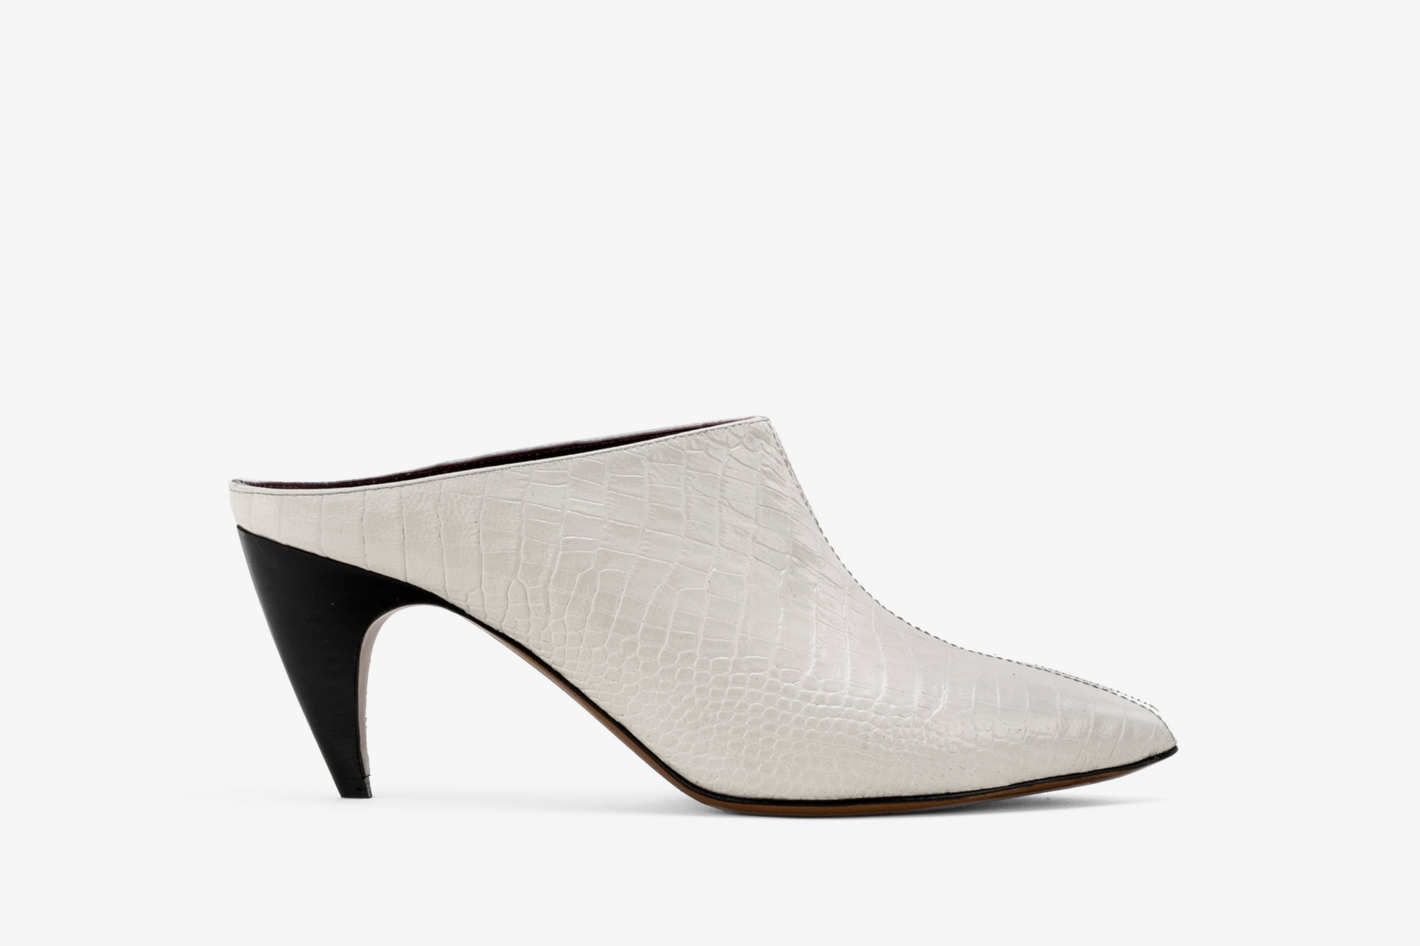 Claire mules in Ivory Crocco